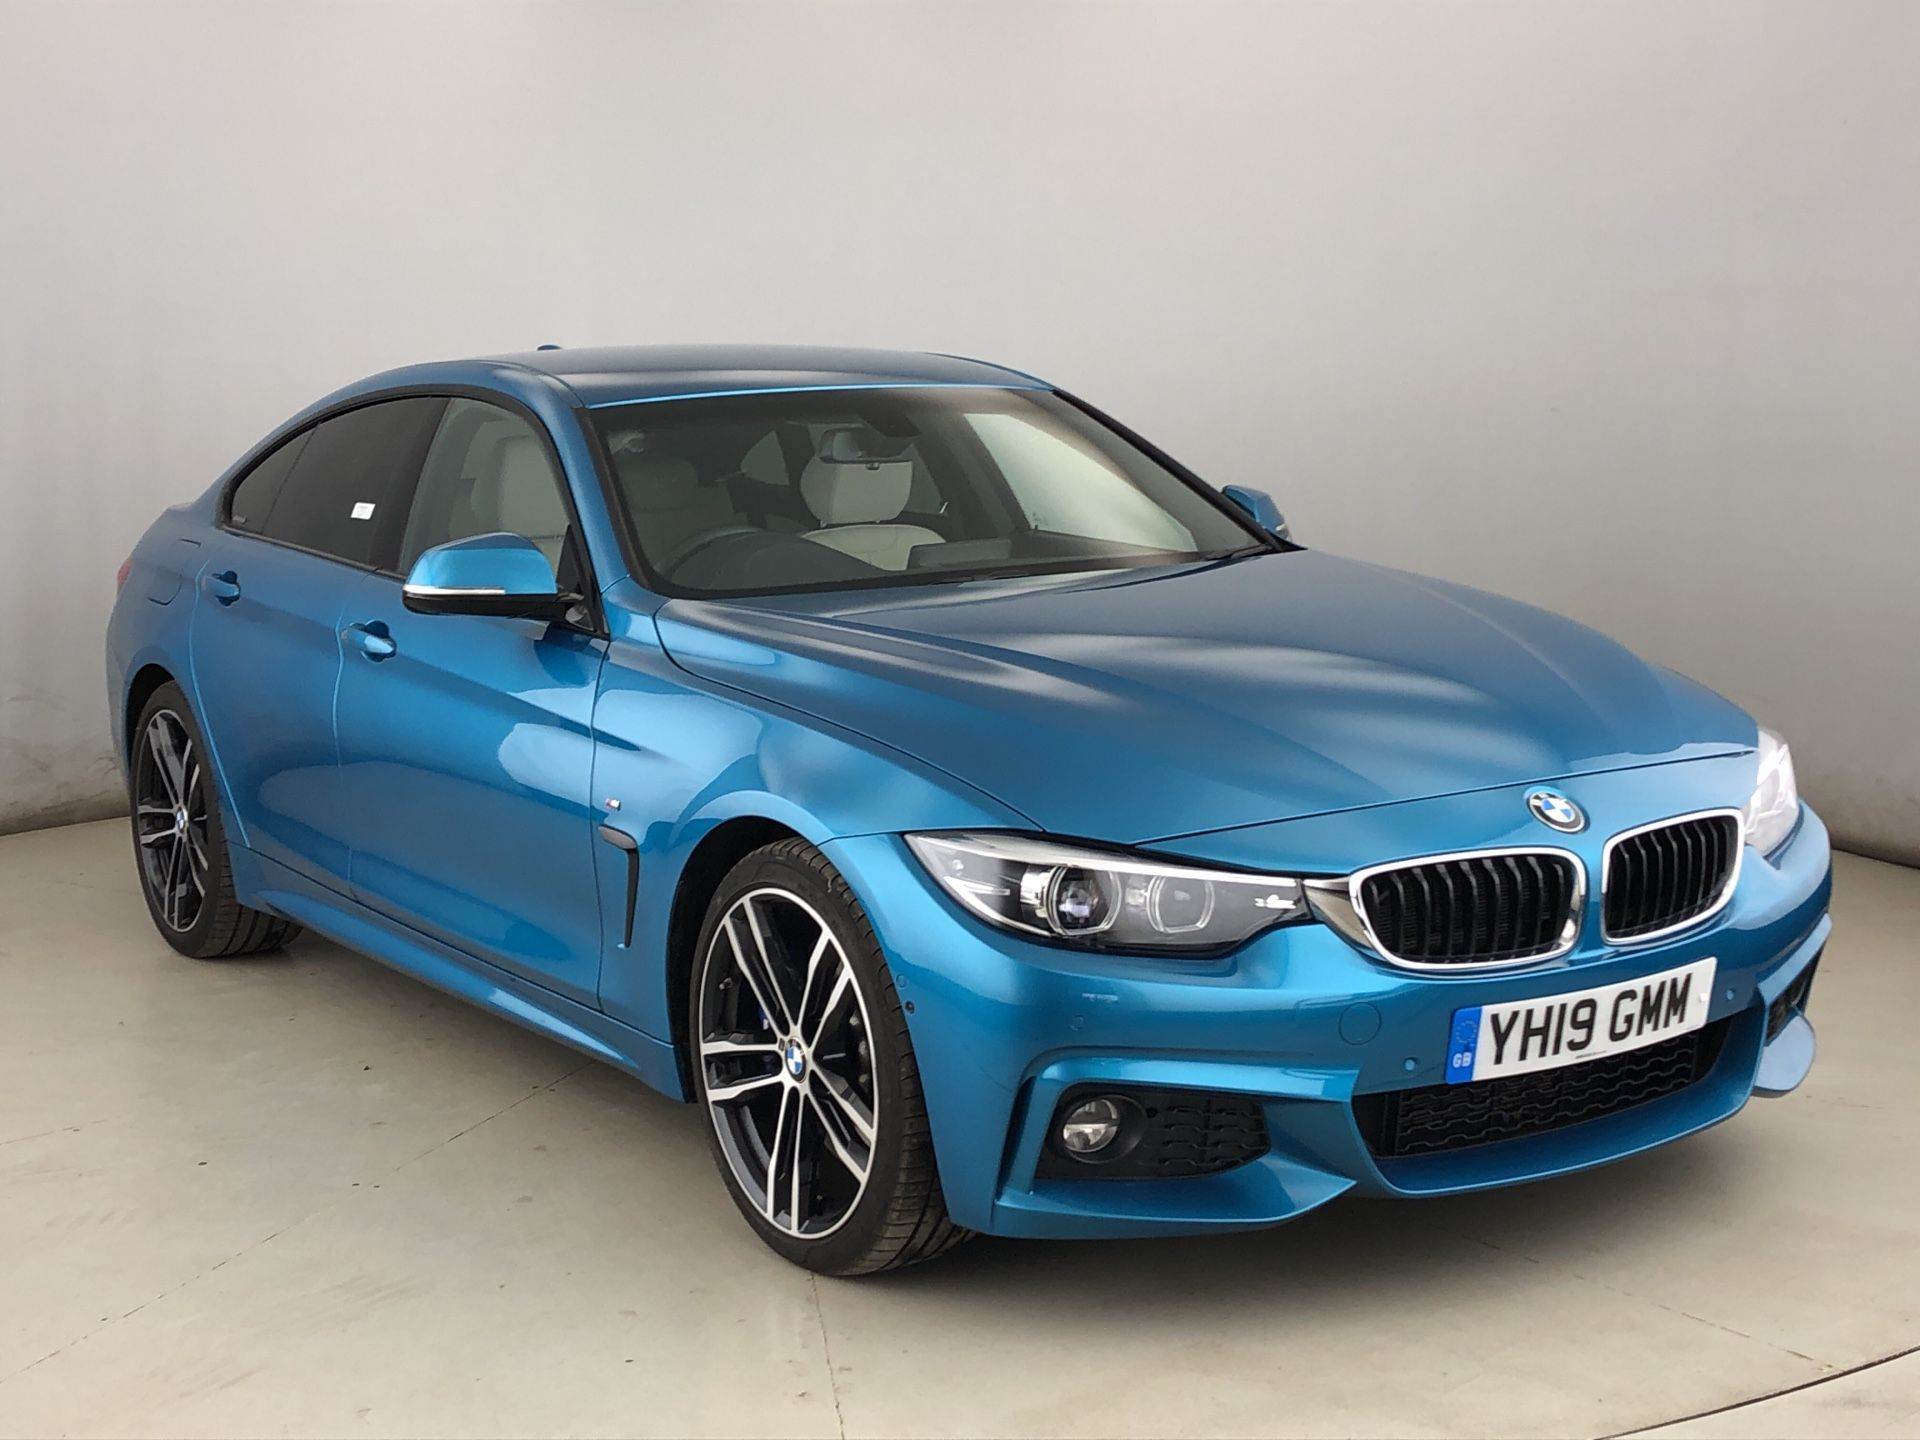 Image 1 - BMW 430i M Sport Gran Coupe Auto (YH19GMM)